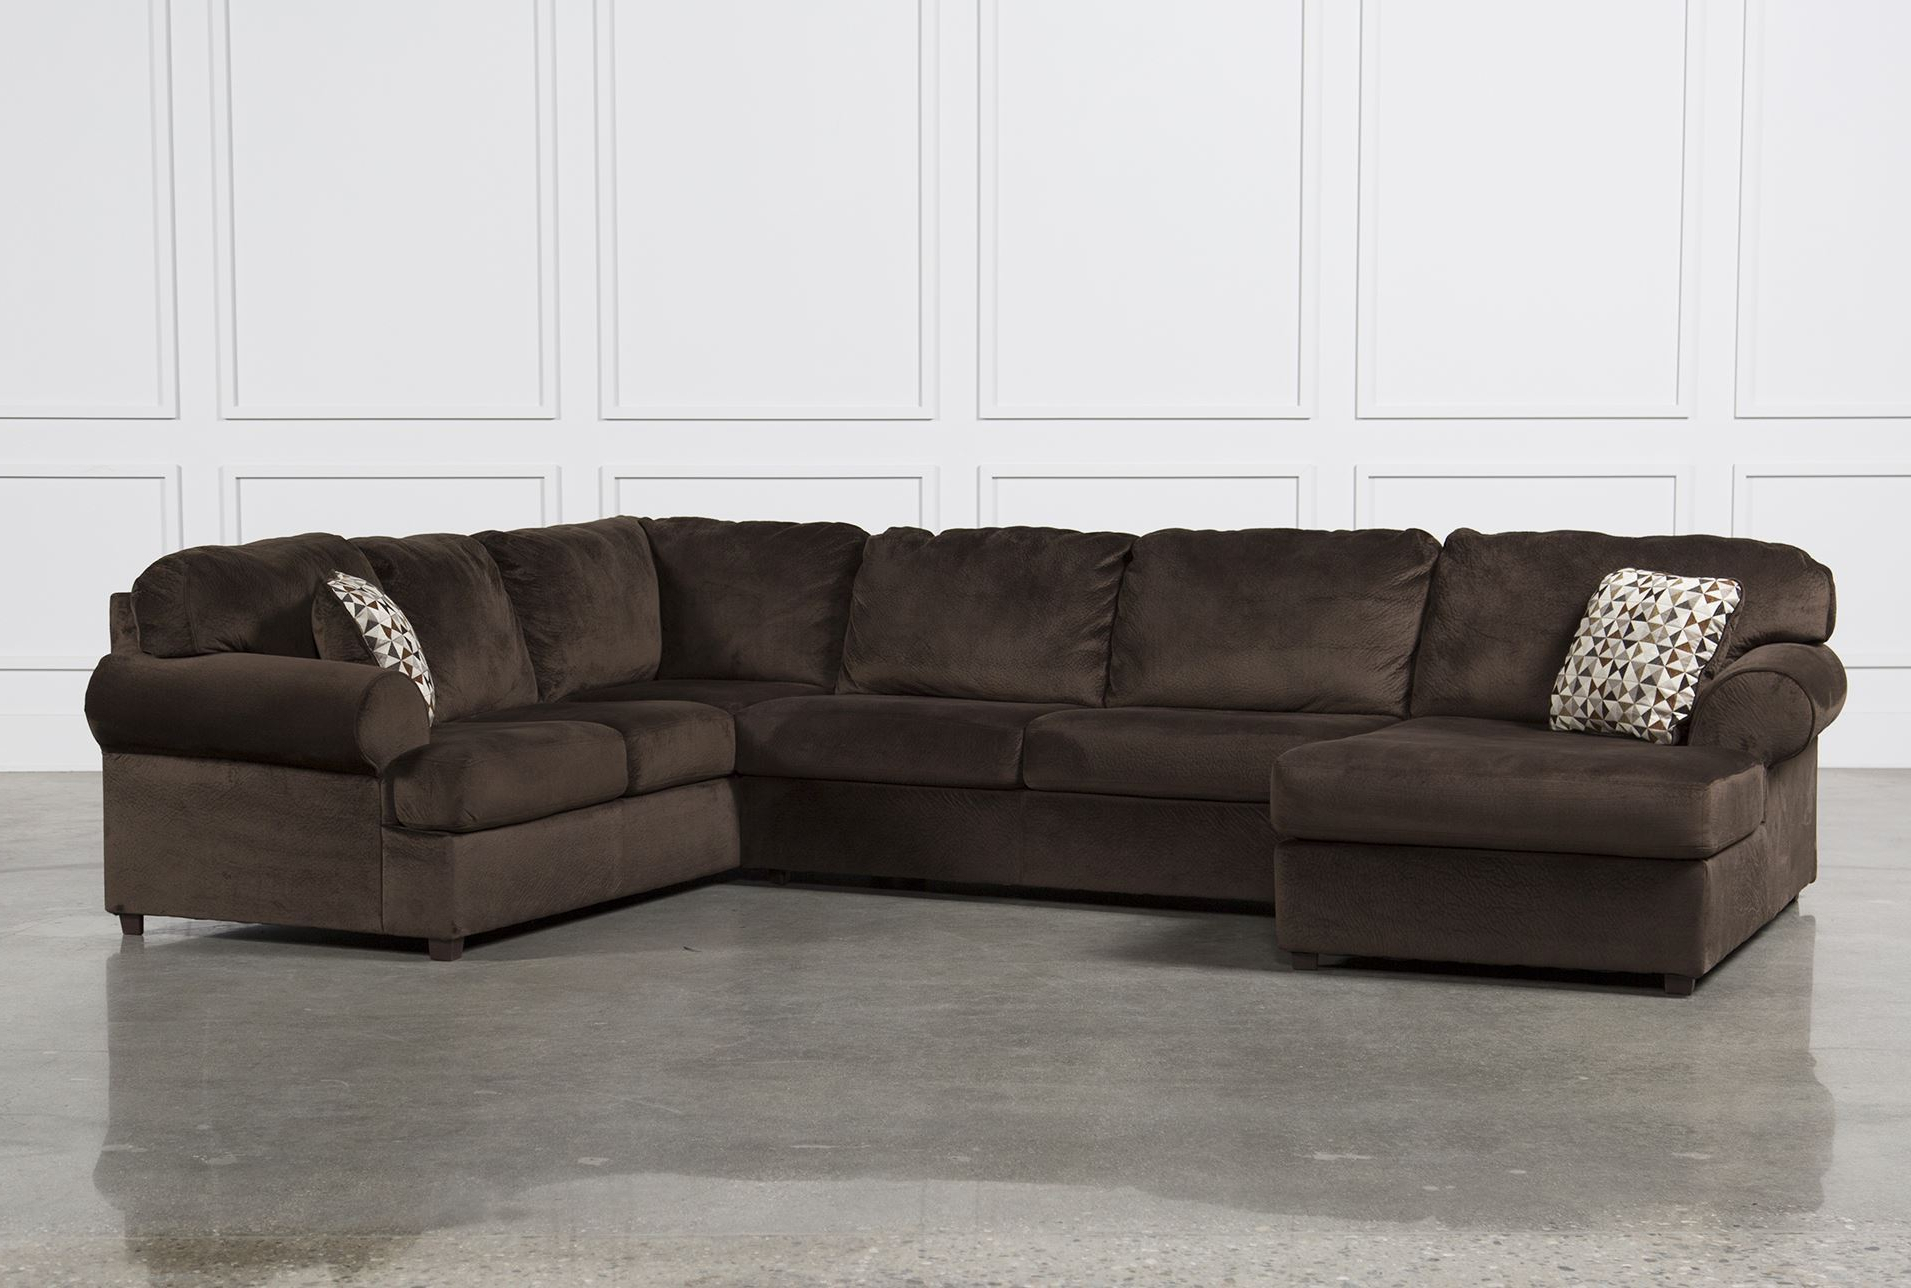 Sectional Sofas Leather And Couches Ideas With Living Spaces Couch Inside 2019 Norfolk Grey 3 Piece Sectionals With Laf Chaise (Gallery 18 of 20)